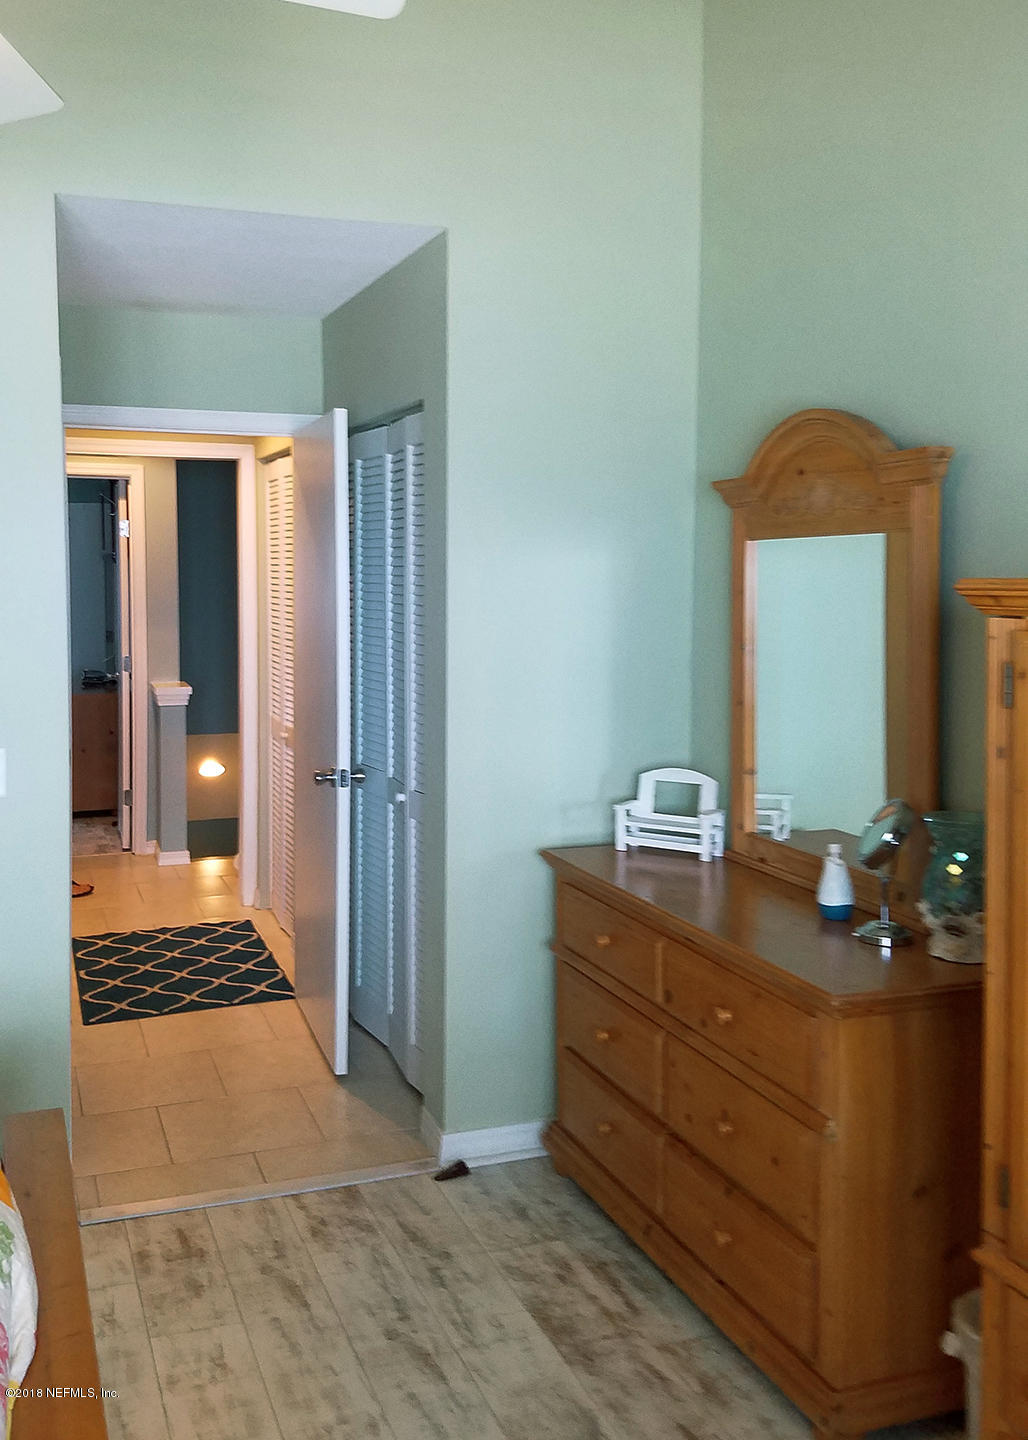 8550 A1A, ST AUGUSTINE, FLORIDA 32080, 2 Bedrooms Bedrooms, ,2 BathroomsBathrooms,Condo,For sale,A1A,971966